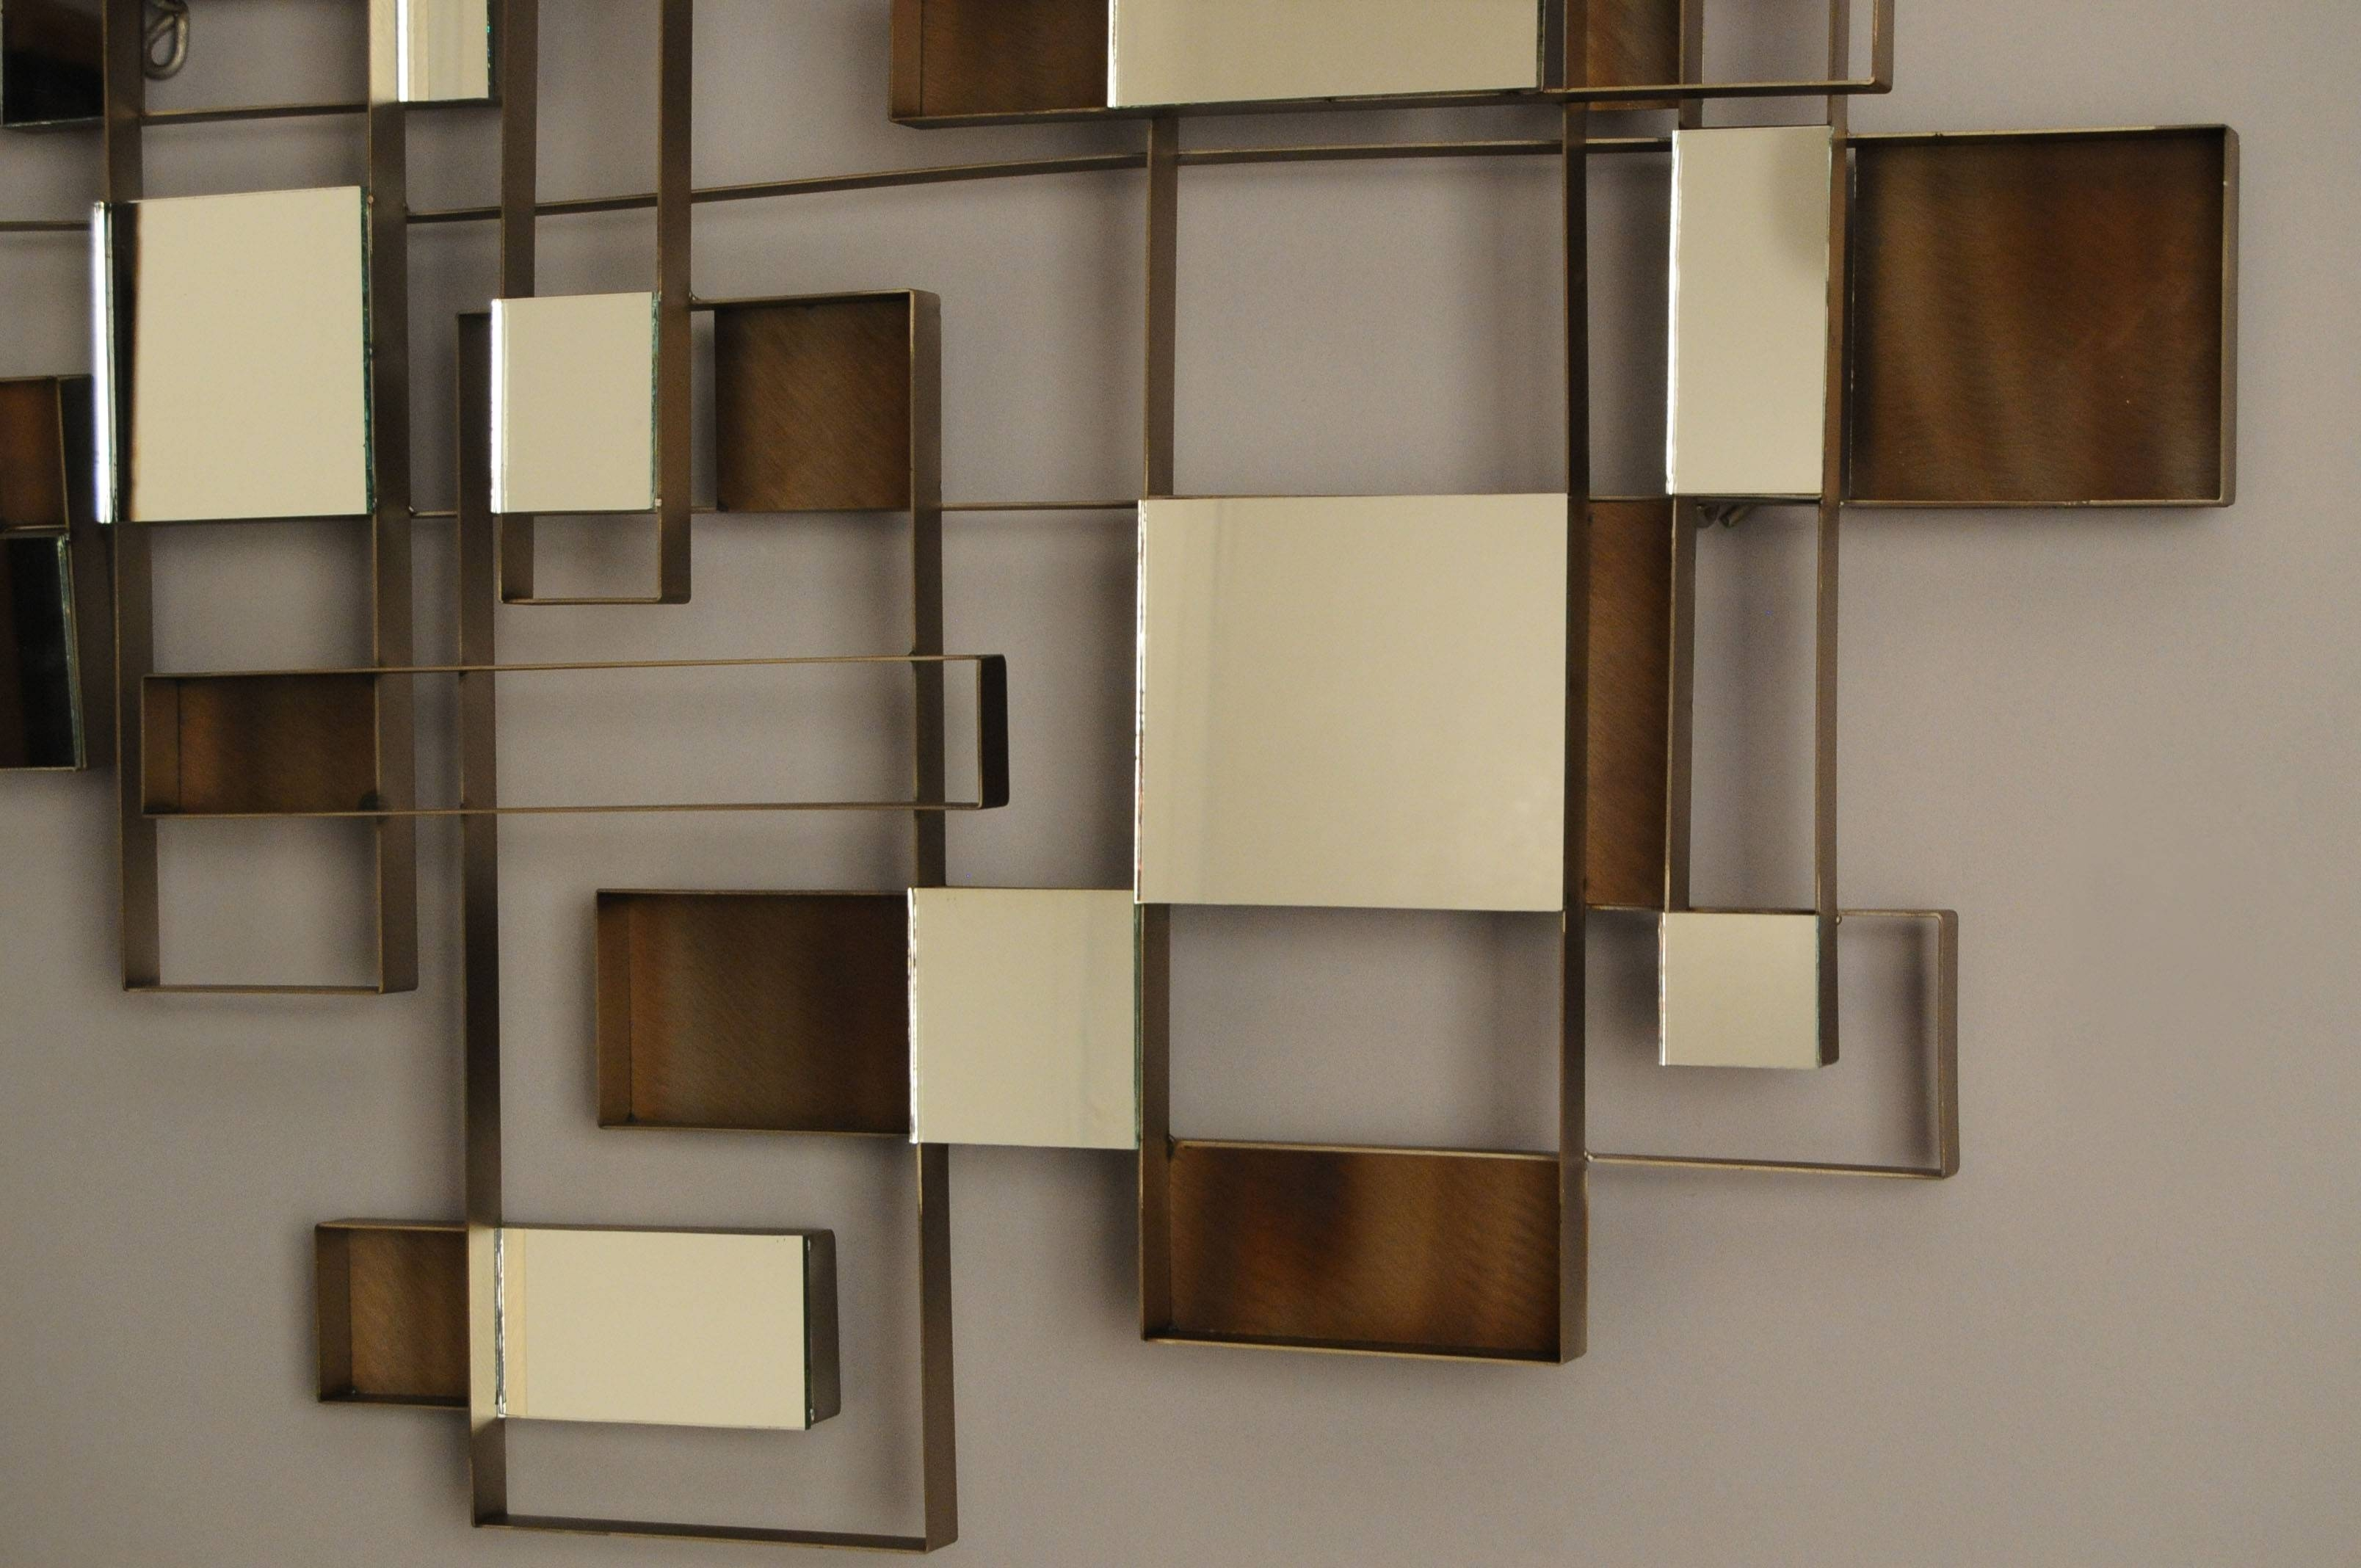 Wall Art Designs: Awesome Wall Art Mirror With Abstract Pattern Intended For Most Recently Released Abstract Mirror Wall Art (View 11 of 15)